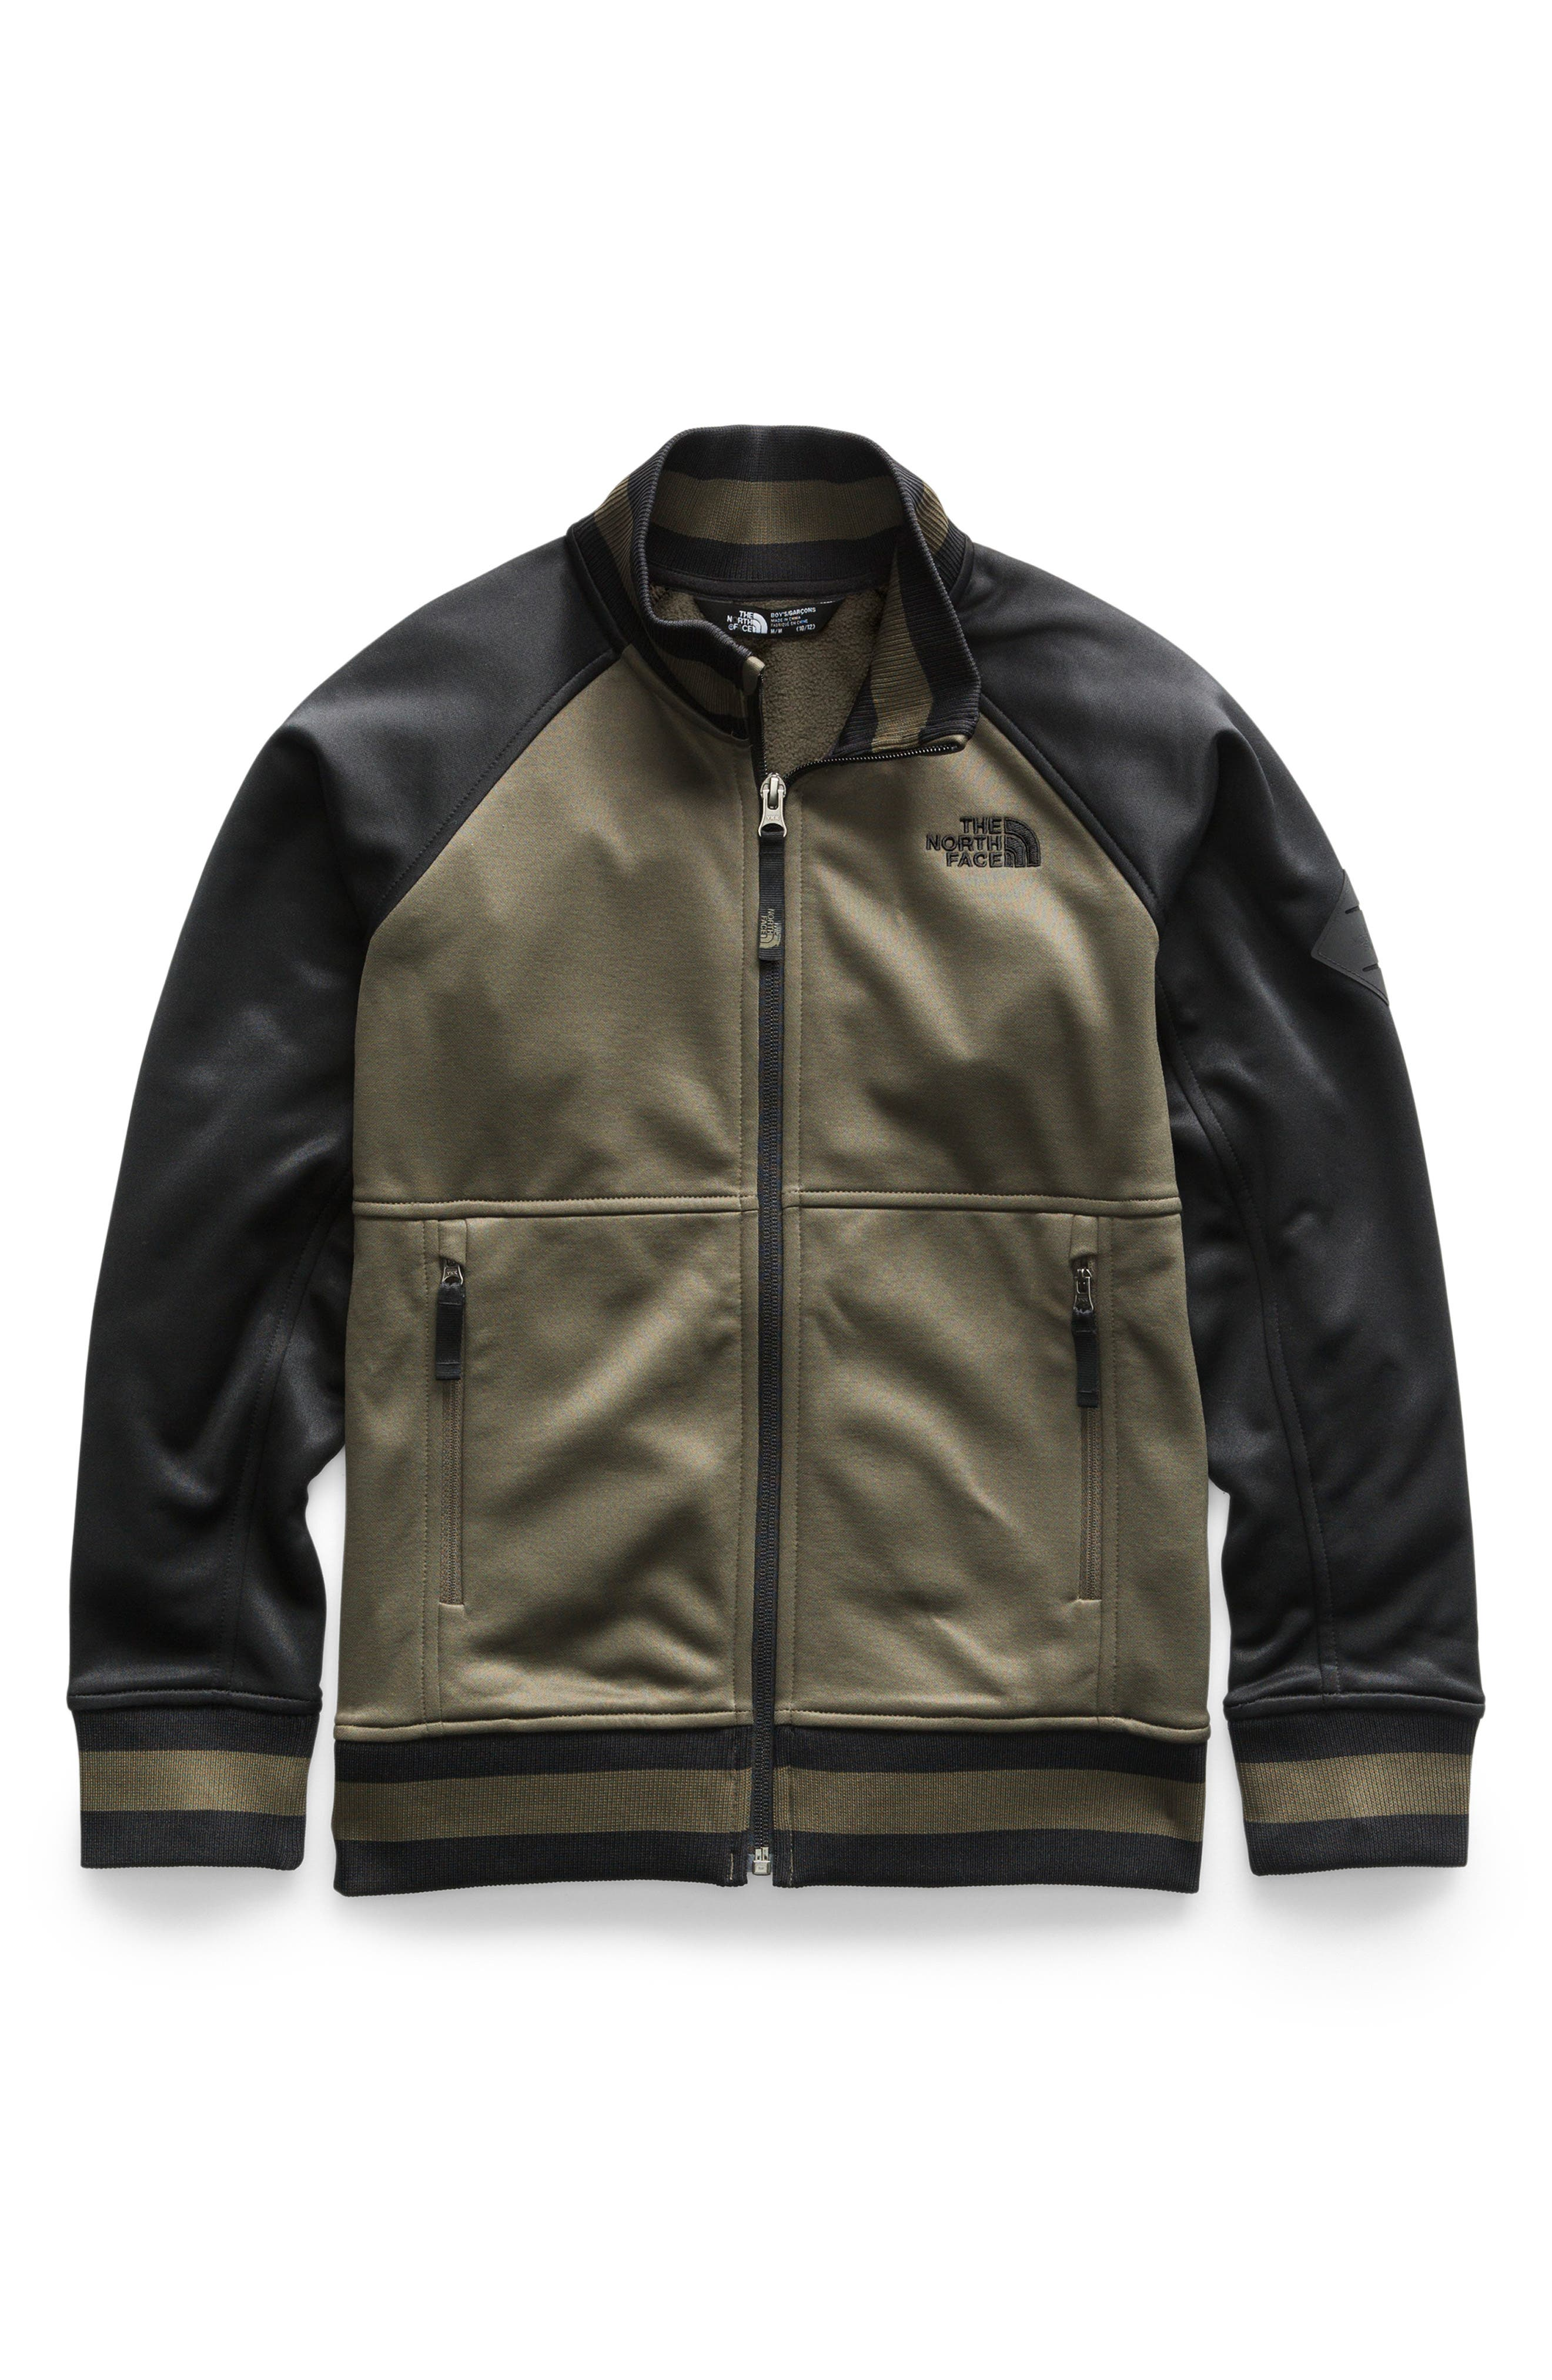 THE NORTH FACE, Takeback Track Jacket, Main thumbnail 1, color, NEW TAUPE GREEN